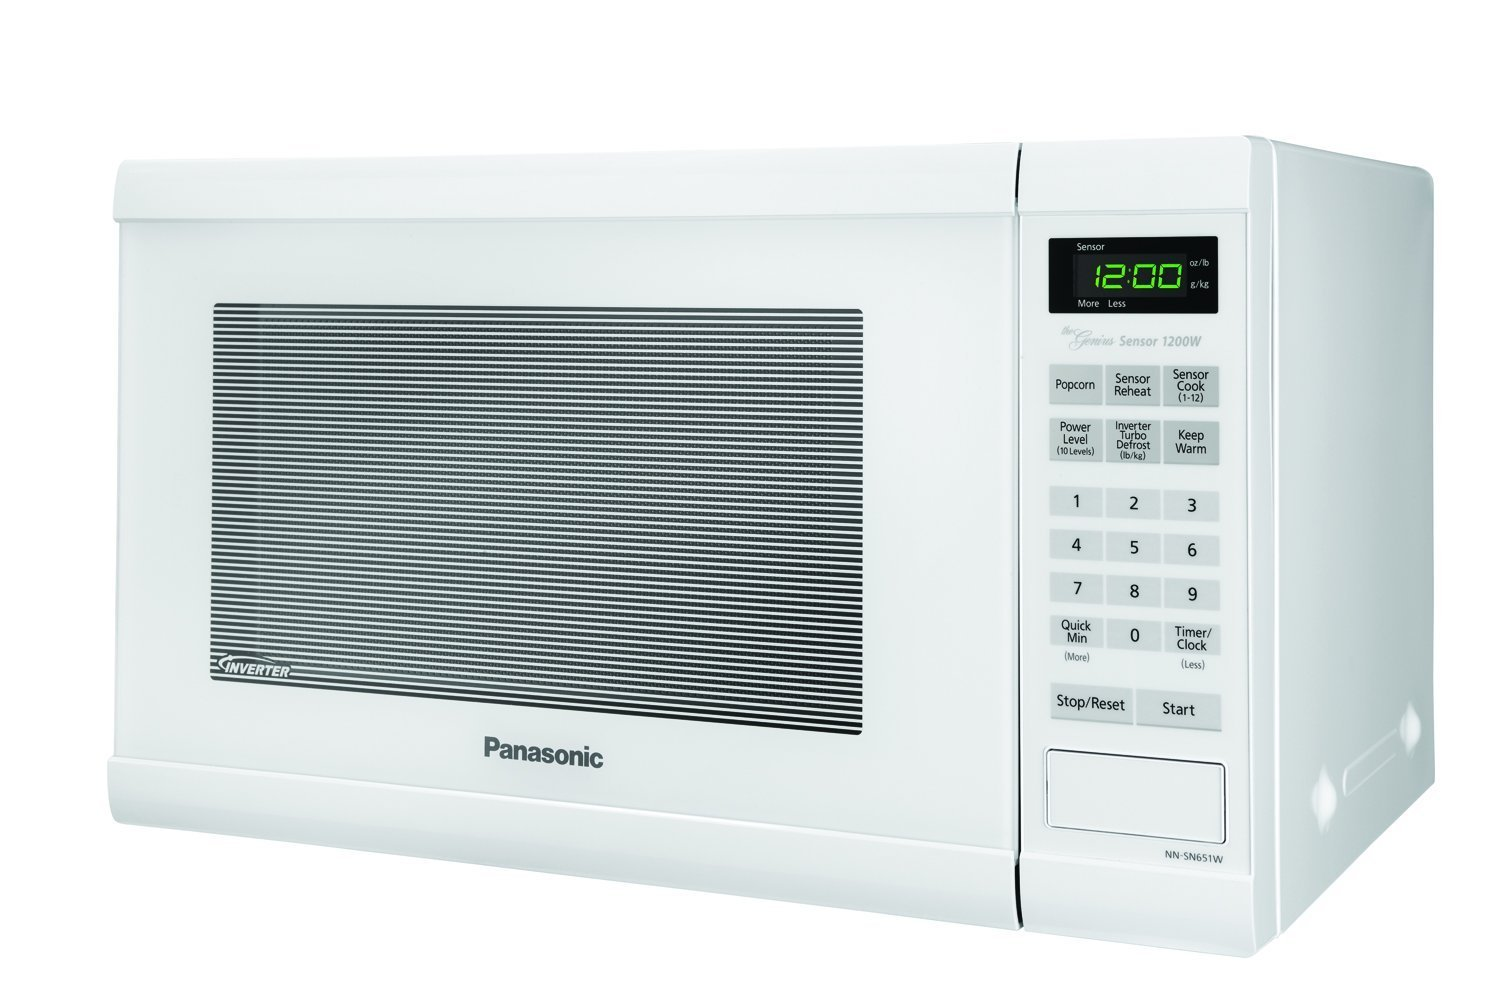 Microwave Oven Compact Countertop Panasonic Electric White 1200 Watt 1.2 cu. ft. Inverter Cookware With Free Pot Holders